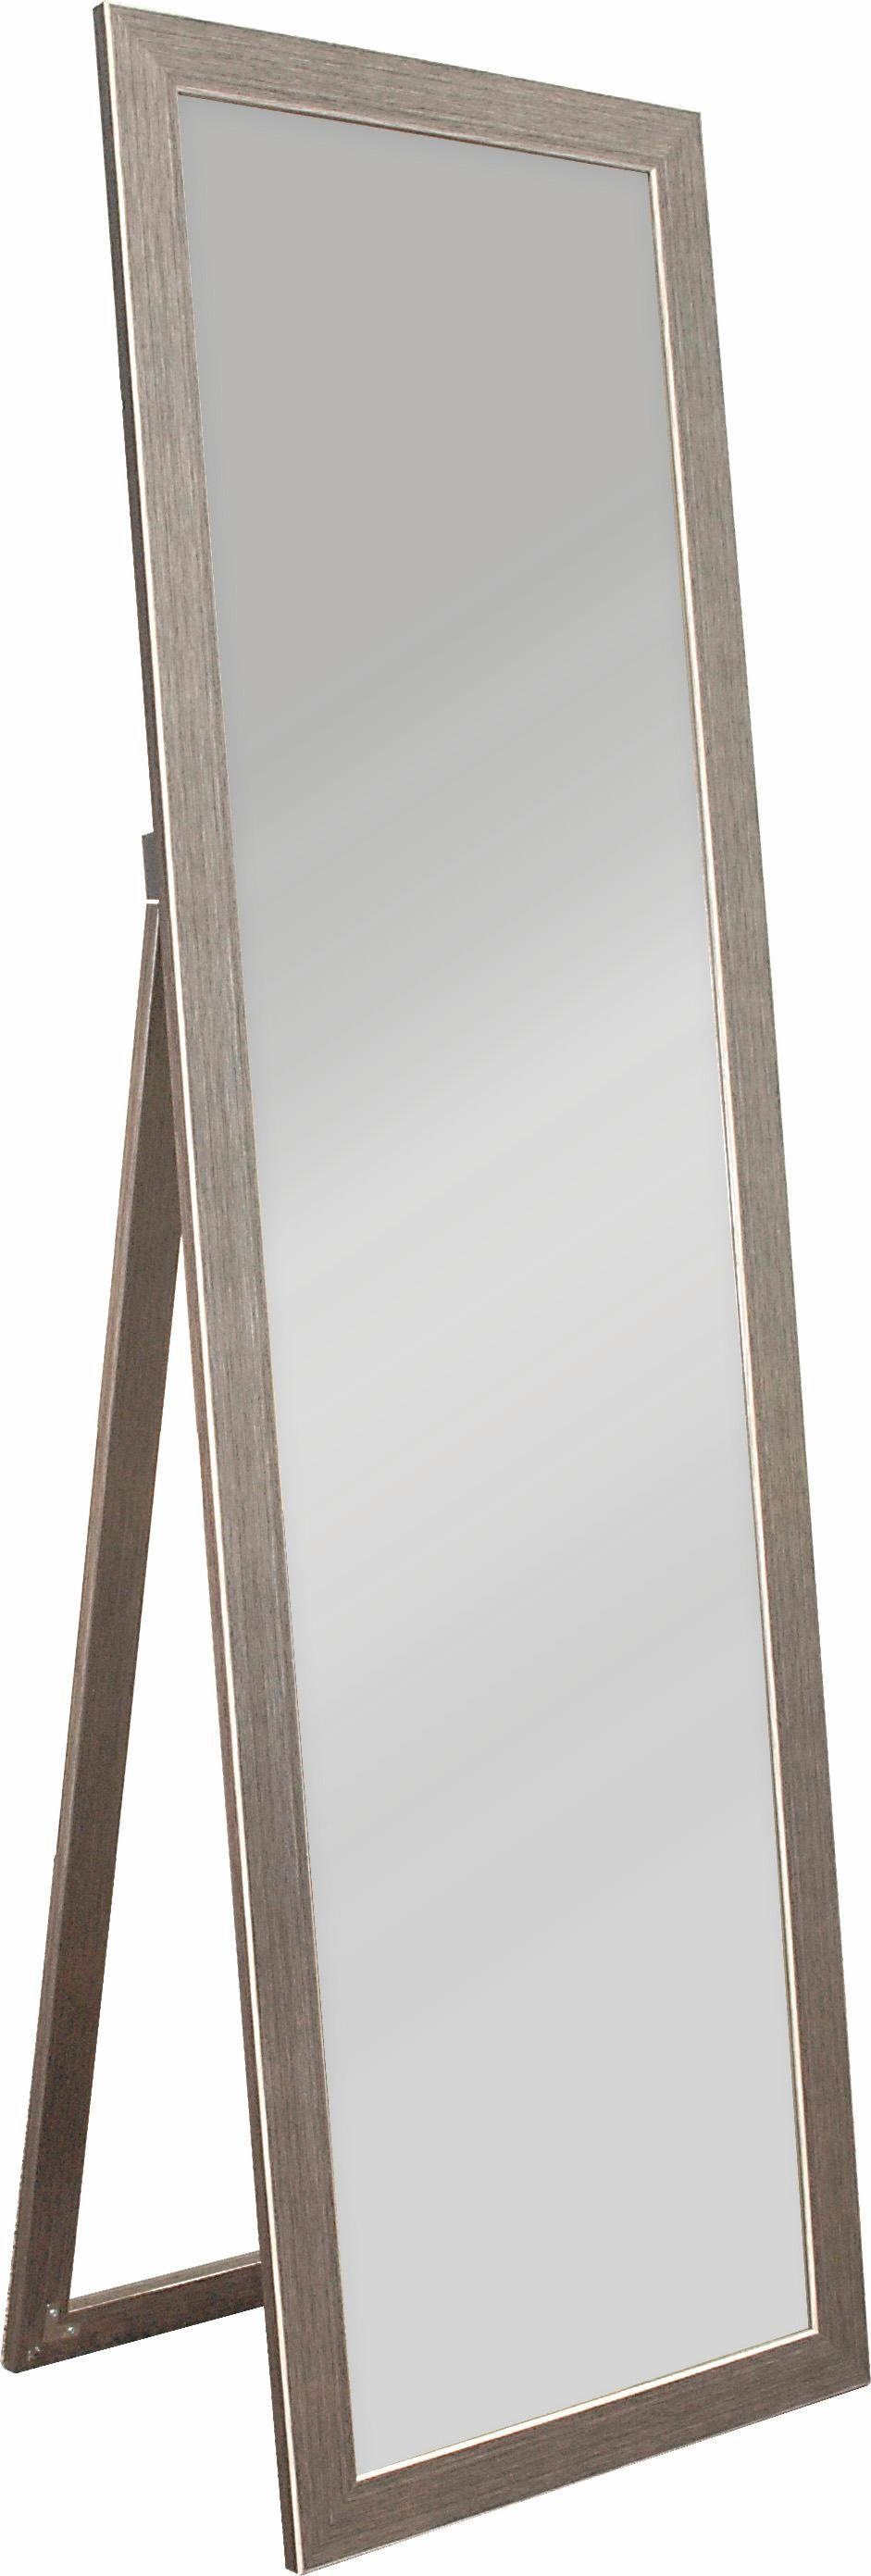 Home affaire Spiegel »Mirror Raahe« 40/150 cm